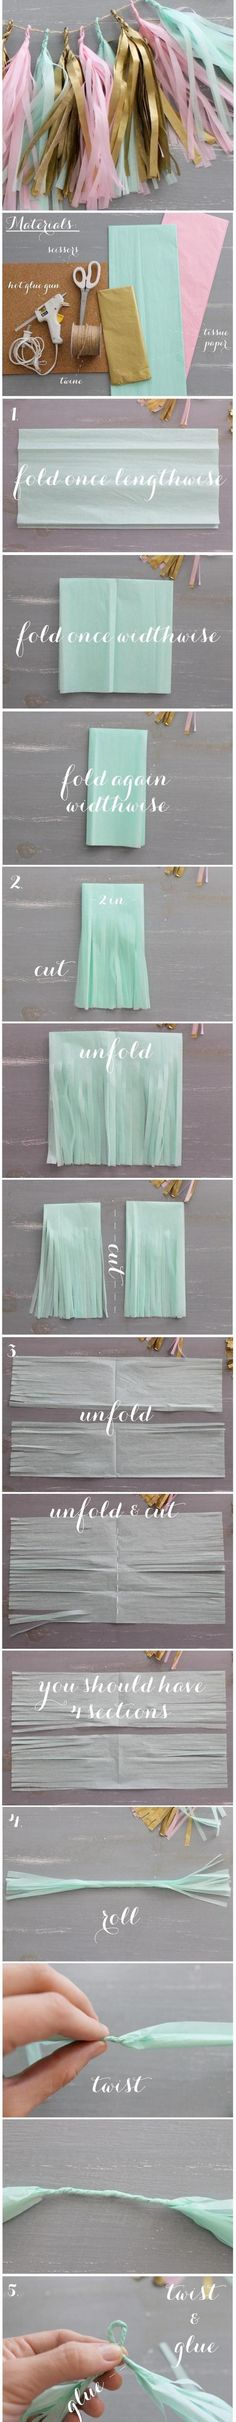 how to make tassel garland.